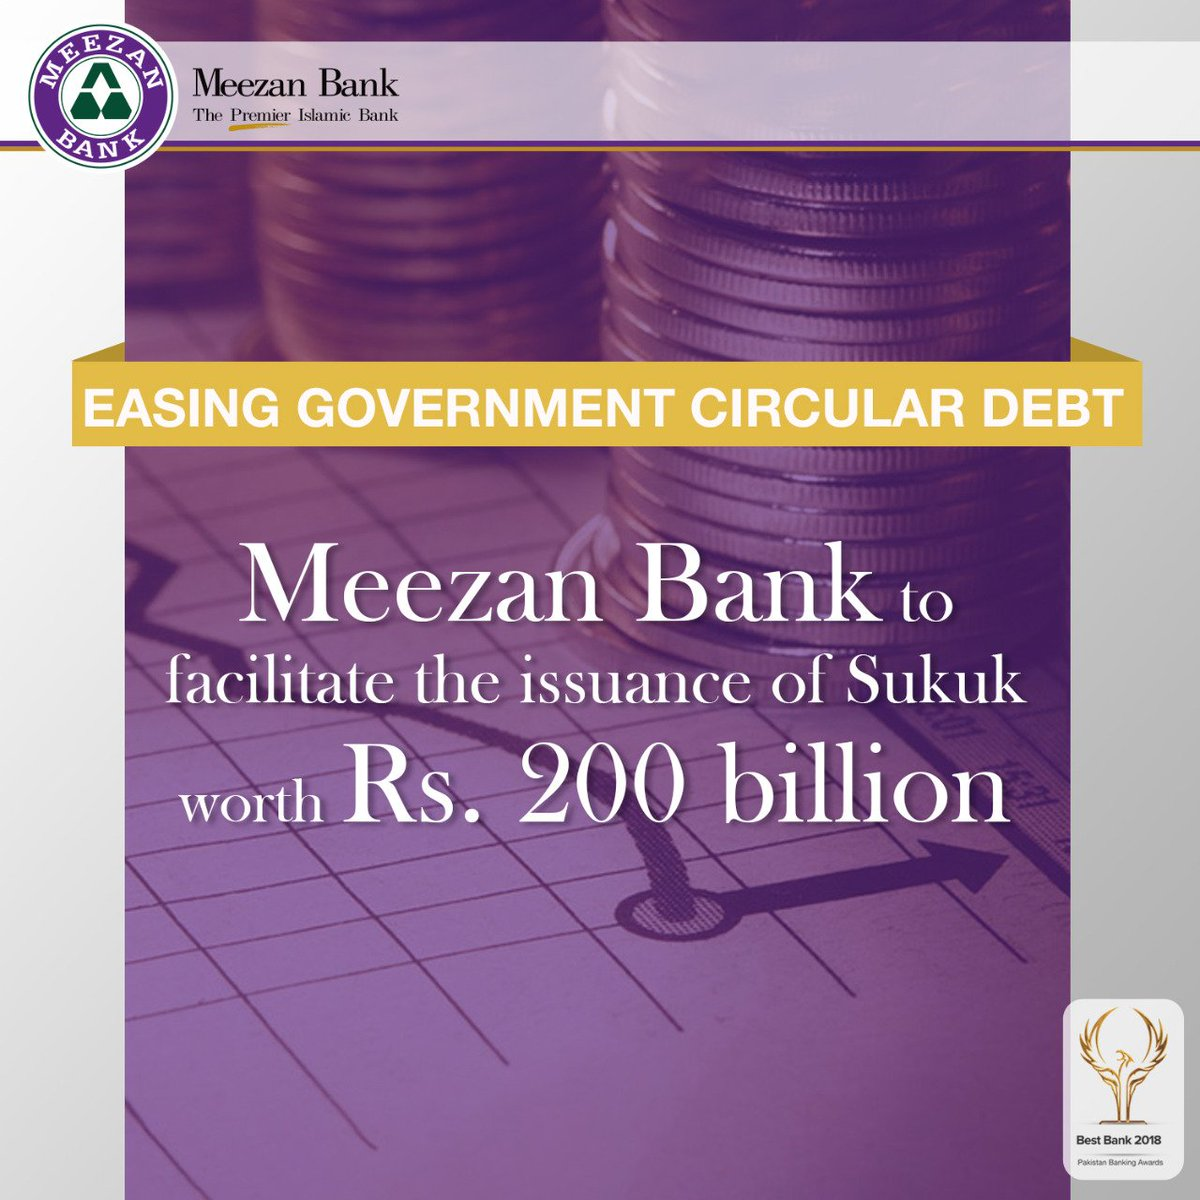 Meezan Bank on Twitter: